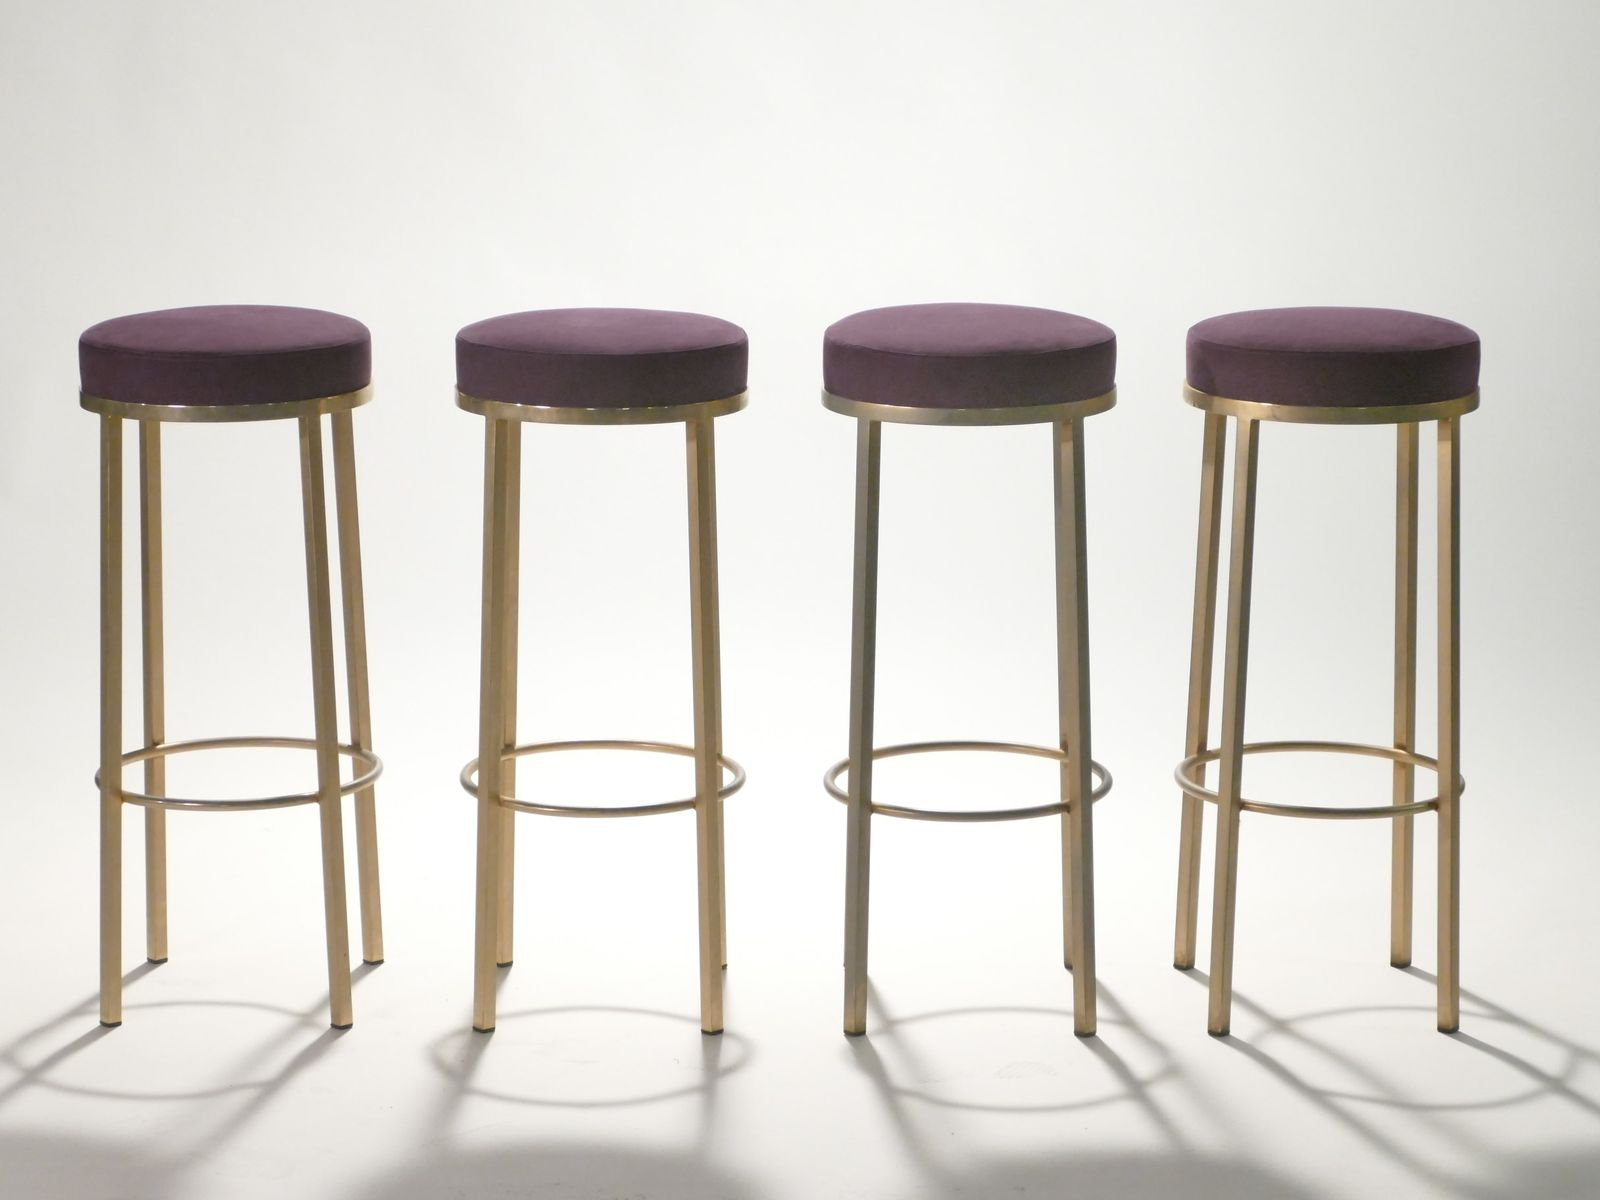 Brass Stools By Maison Romeo 1970s Set Of 4 For Sale At